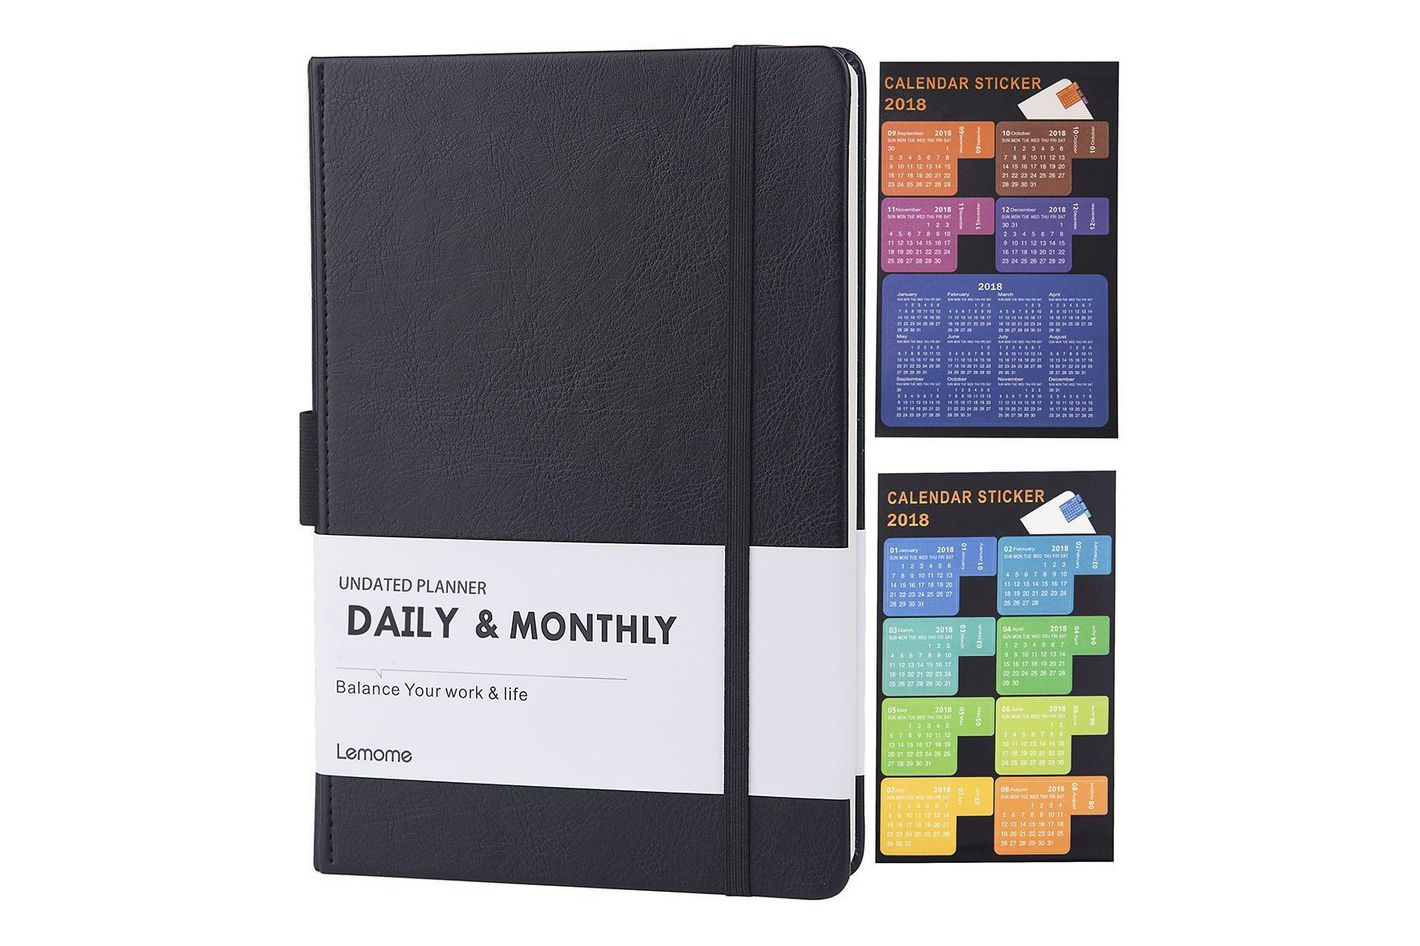 lemome undated daily and monthly planner